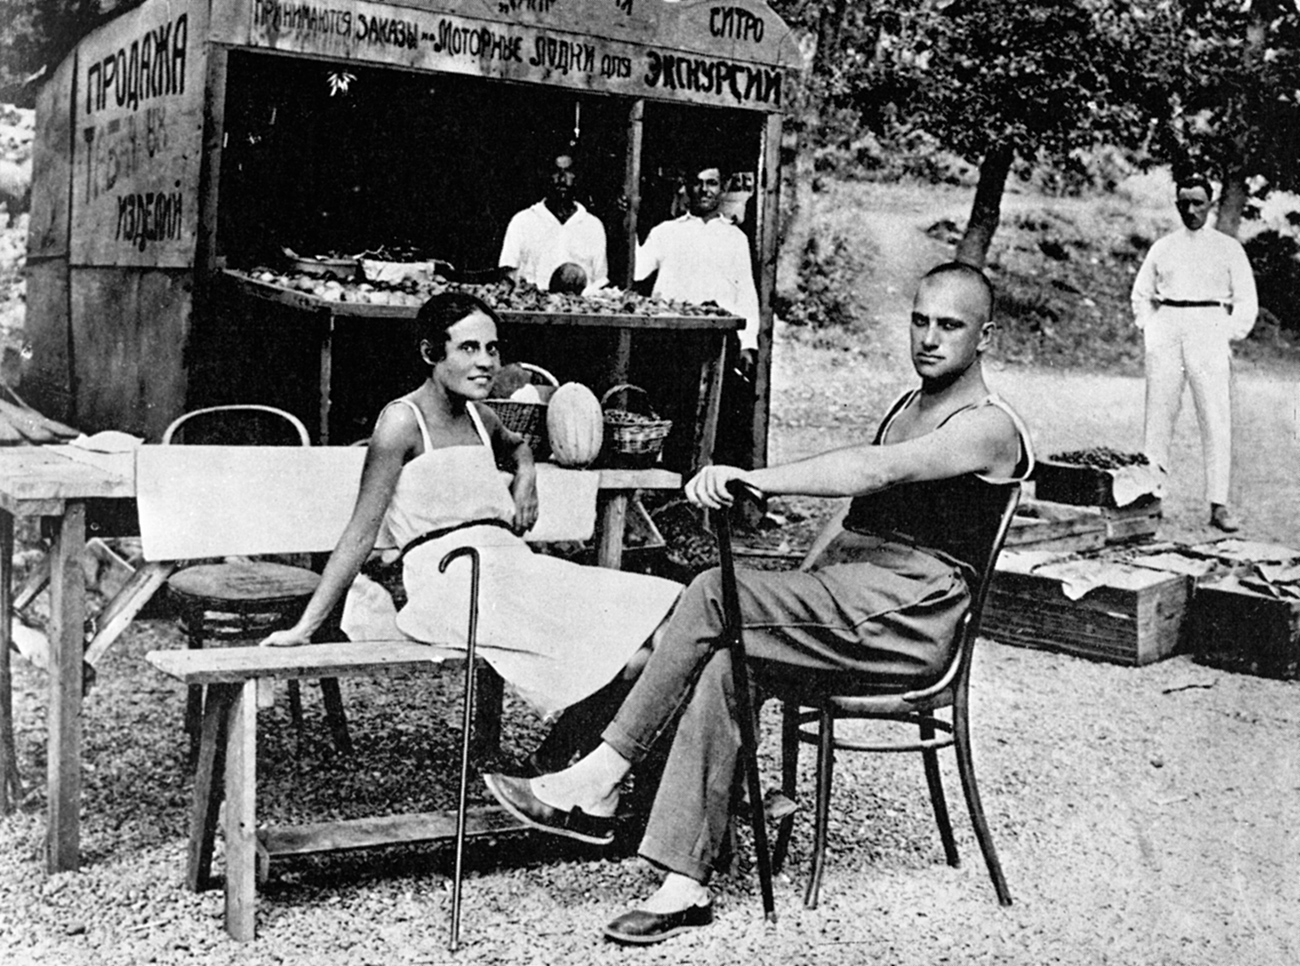 Poet Vladimir Mayakovsky (right) and Lilia Brik (left) on vacation.